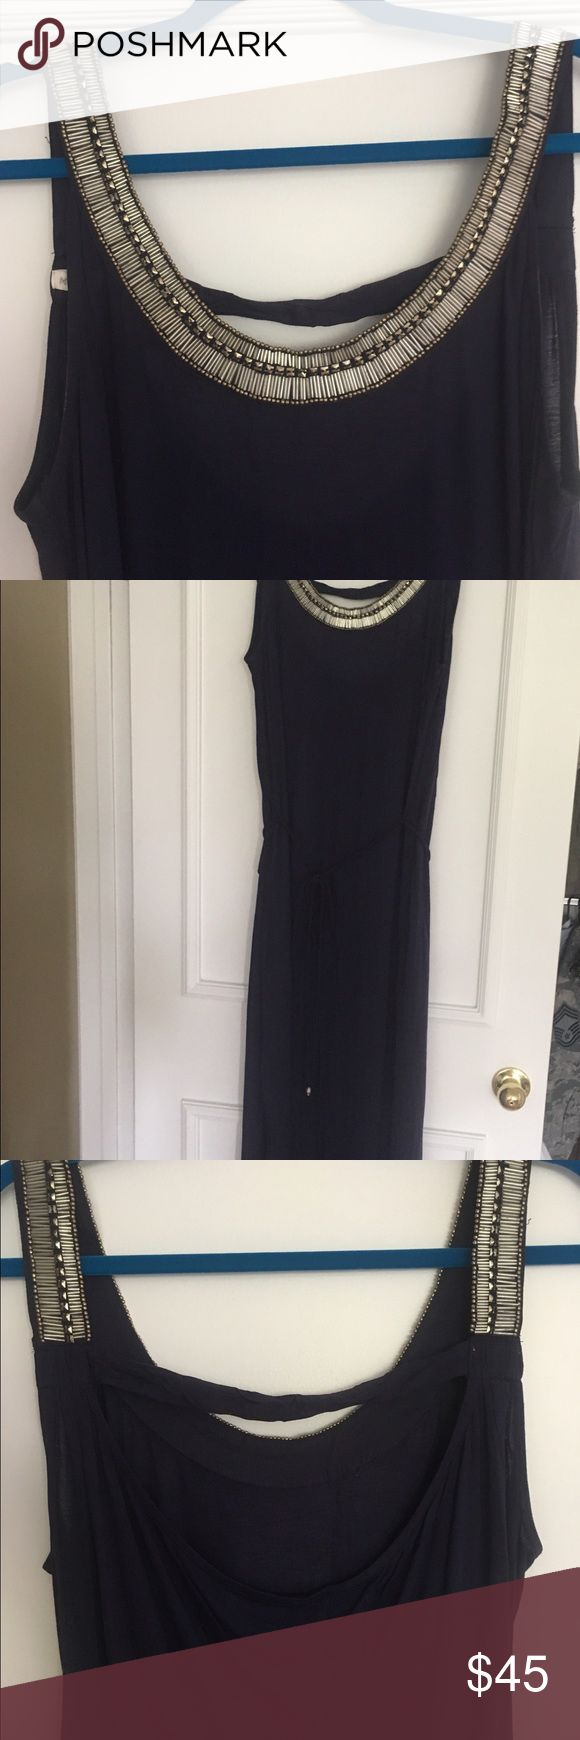 "Monsoon Grecian style maxi dress Gorgeous dark blue Grecian style maxi dress from UK brand Monsoon. Worn once so EUC. Super soft fine knit jersey with cowl back and beading around neckline. Belted and slits to the bottom. I'm 5'7"" and this hit the floor in flats (wore to a wedding in Greece) Monsoon Dresses Maxi"